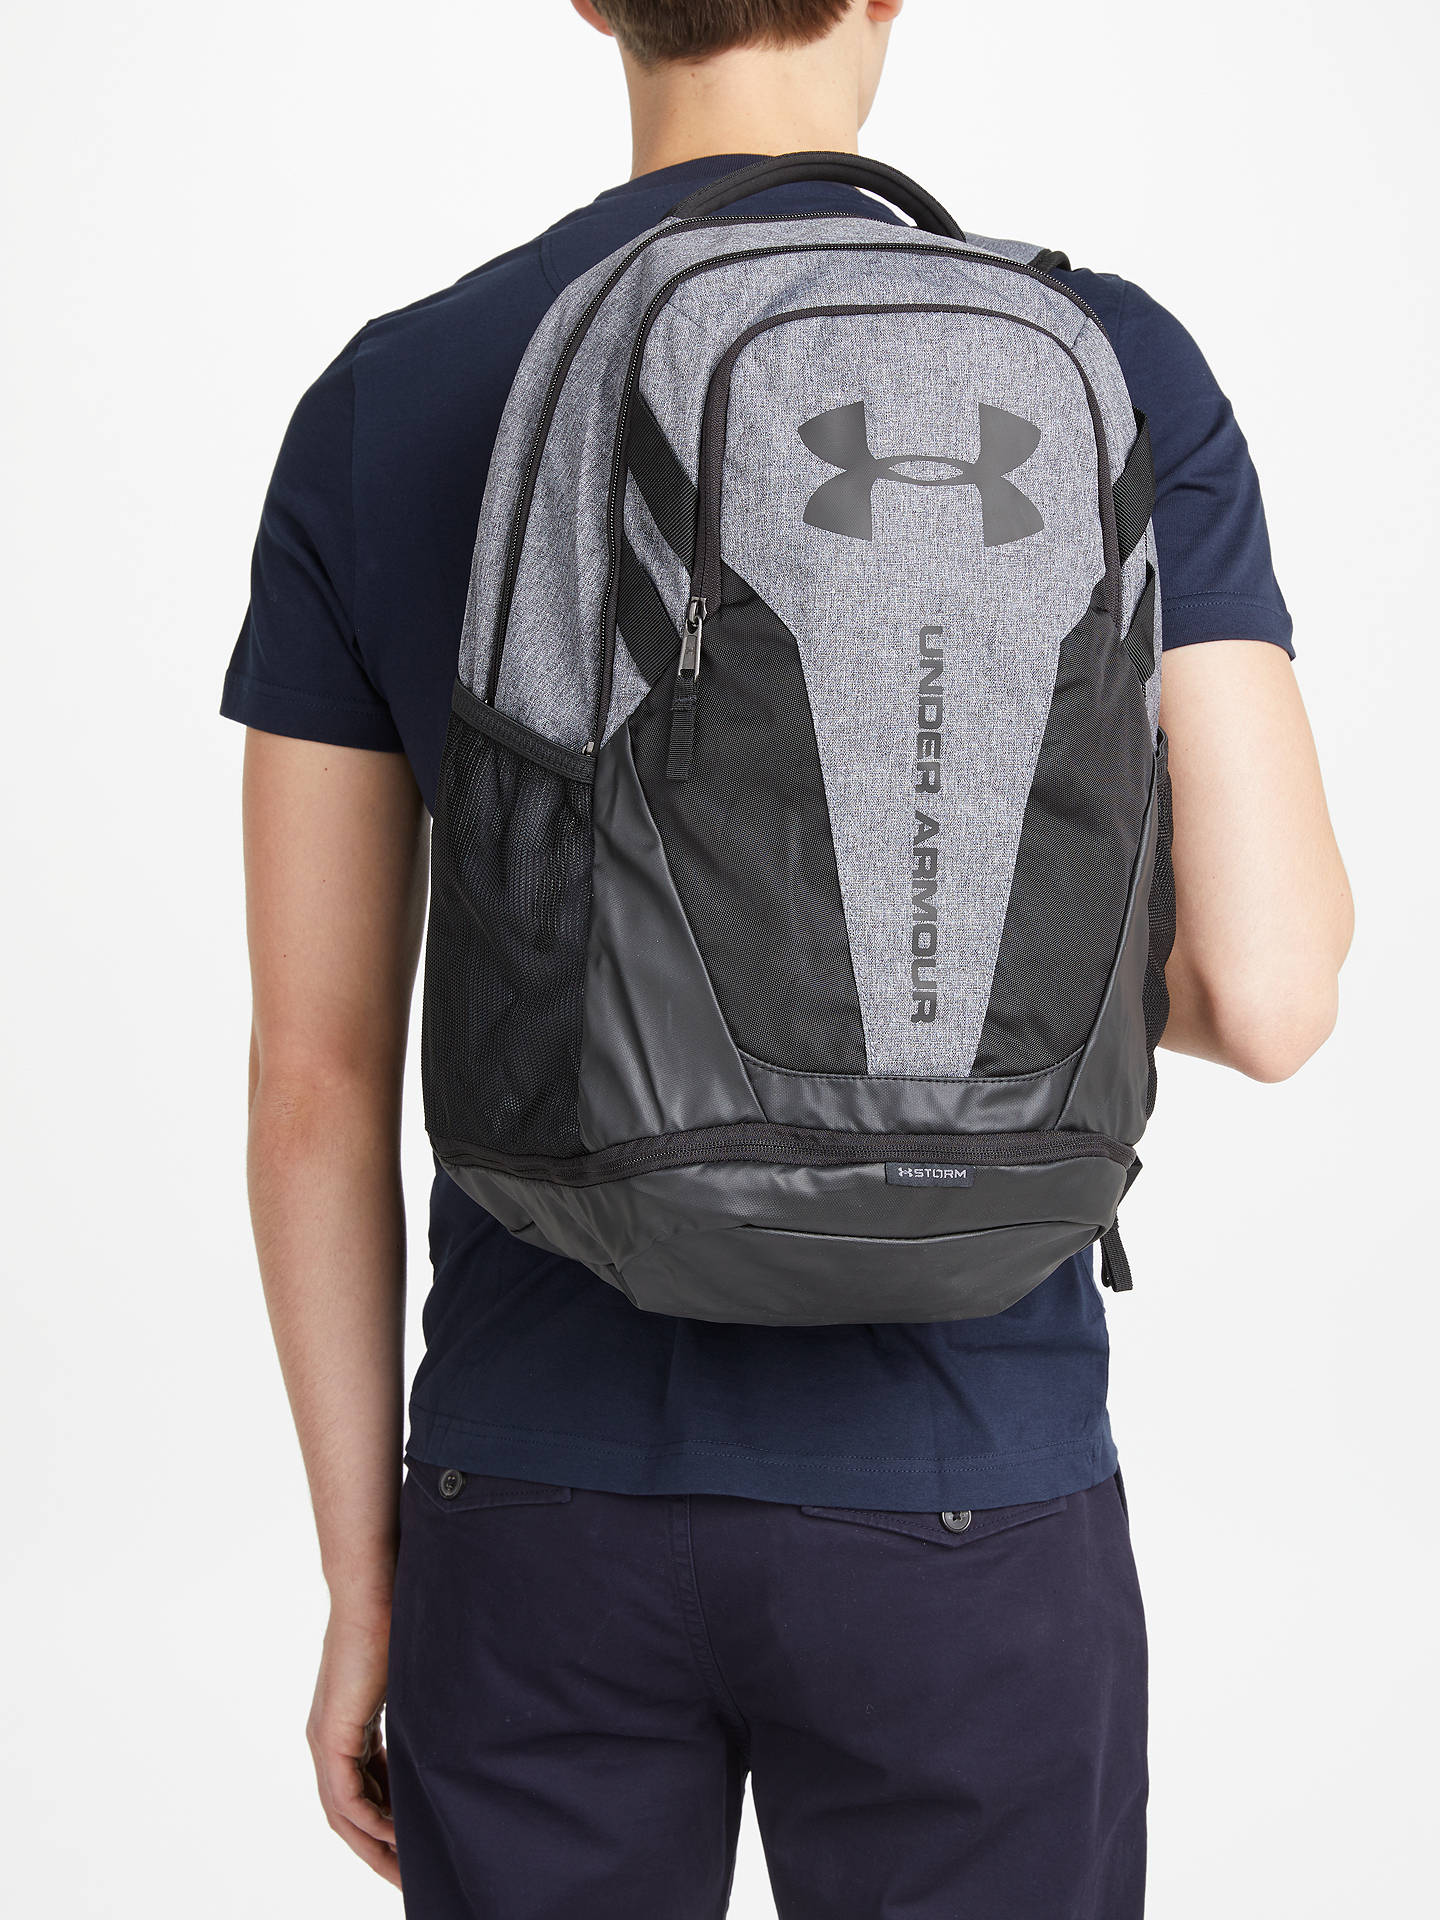 cd4e425fe5 ... Buy Under Armour Hustle 3.0 Backpack